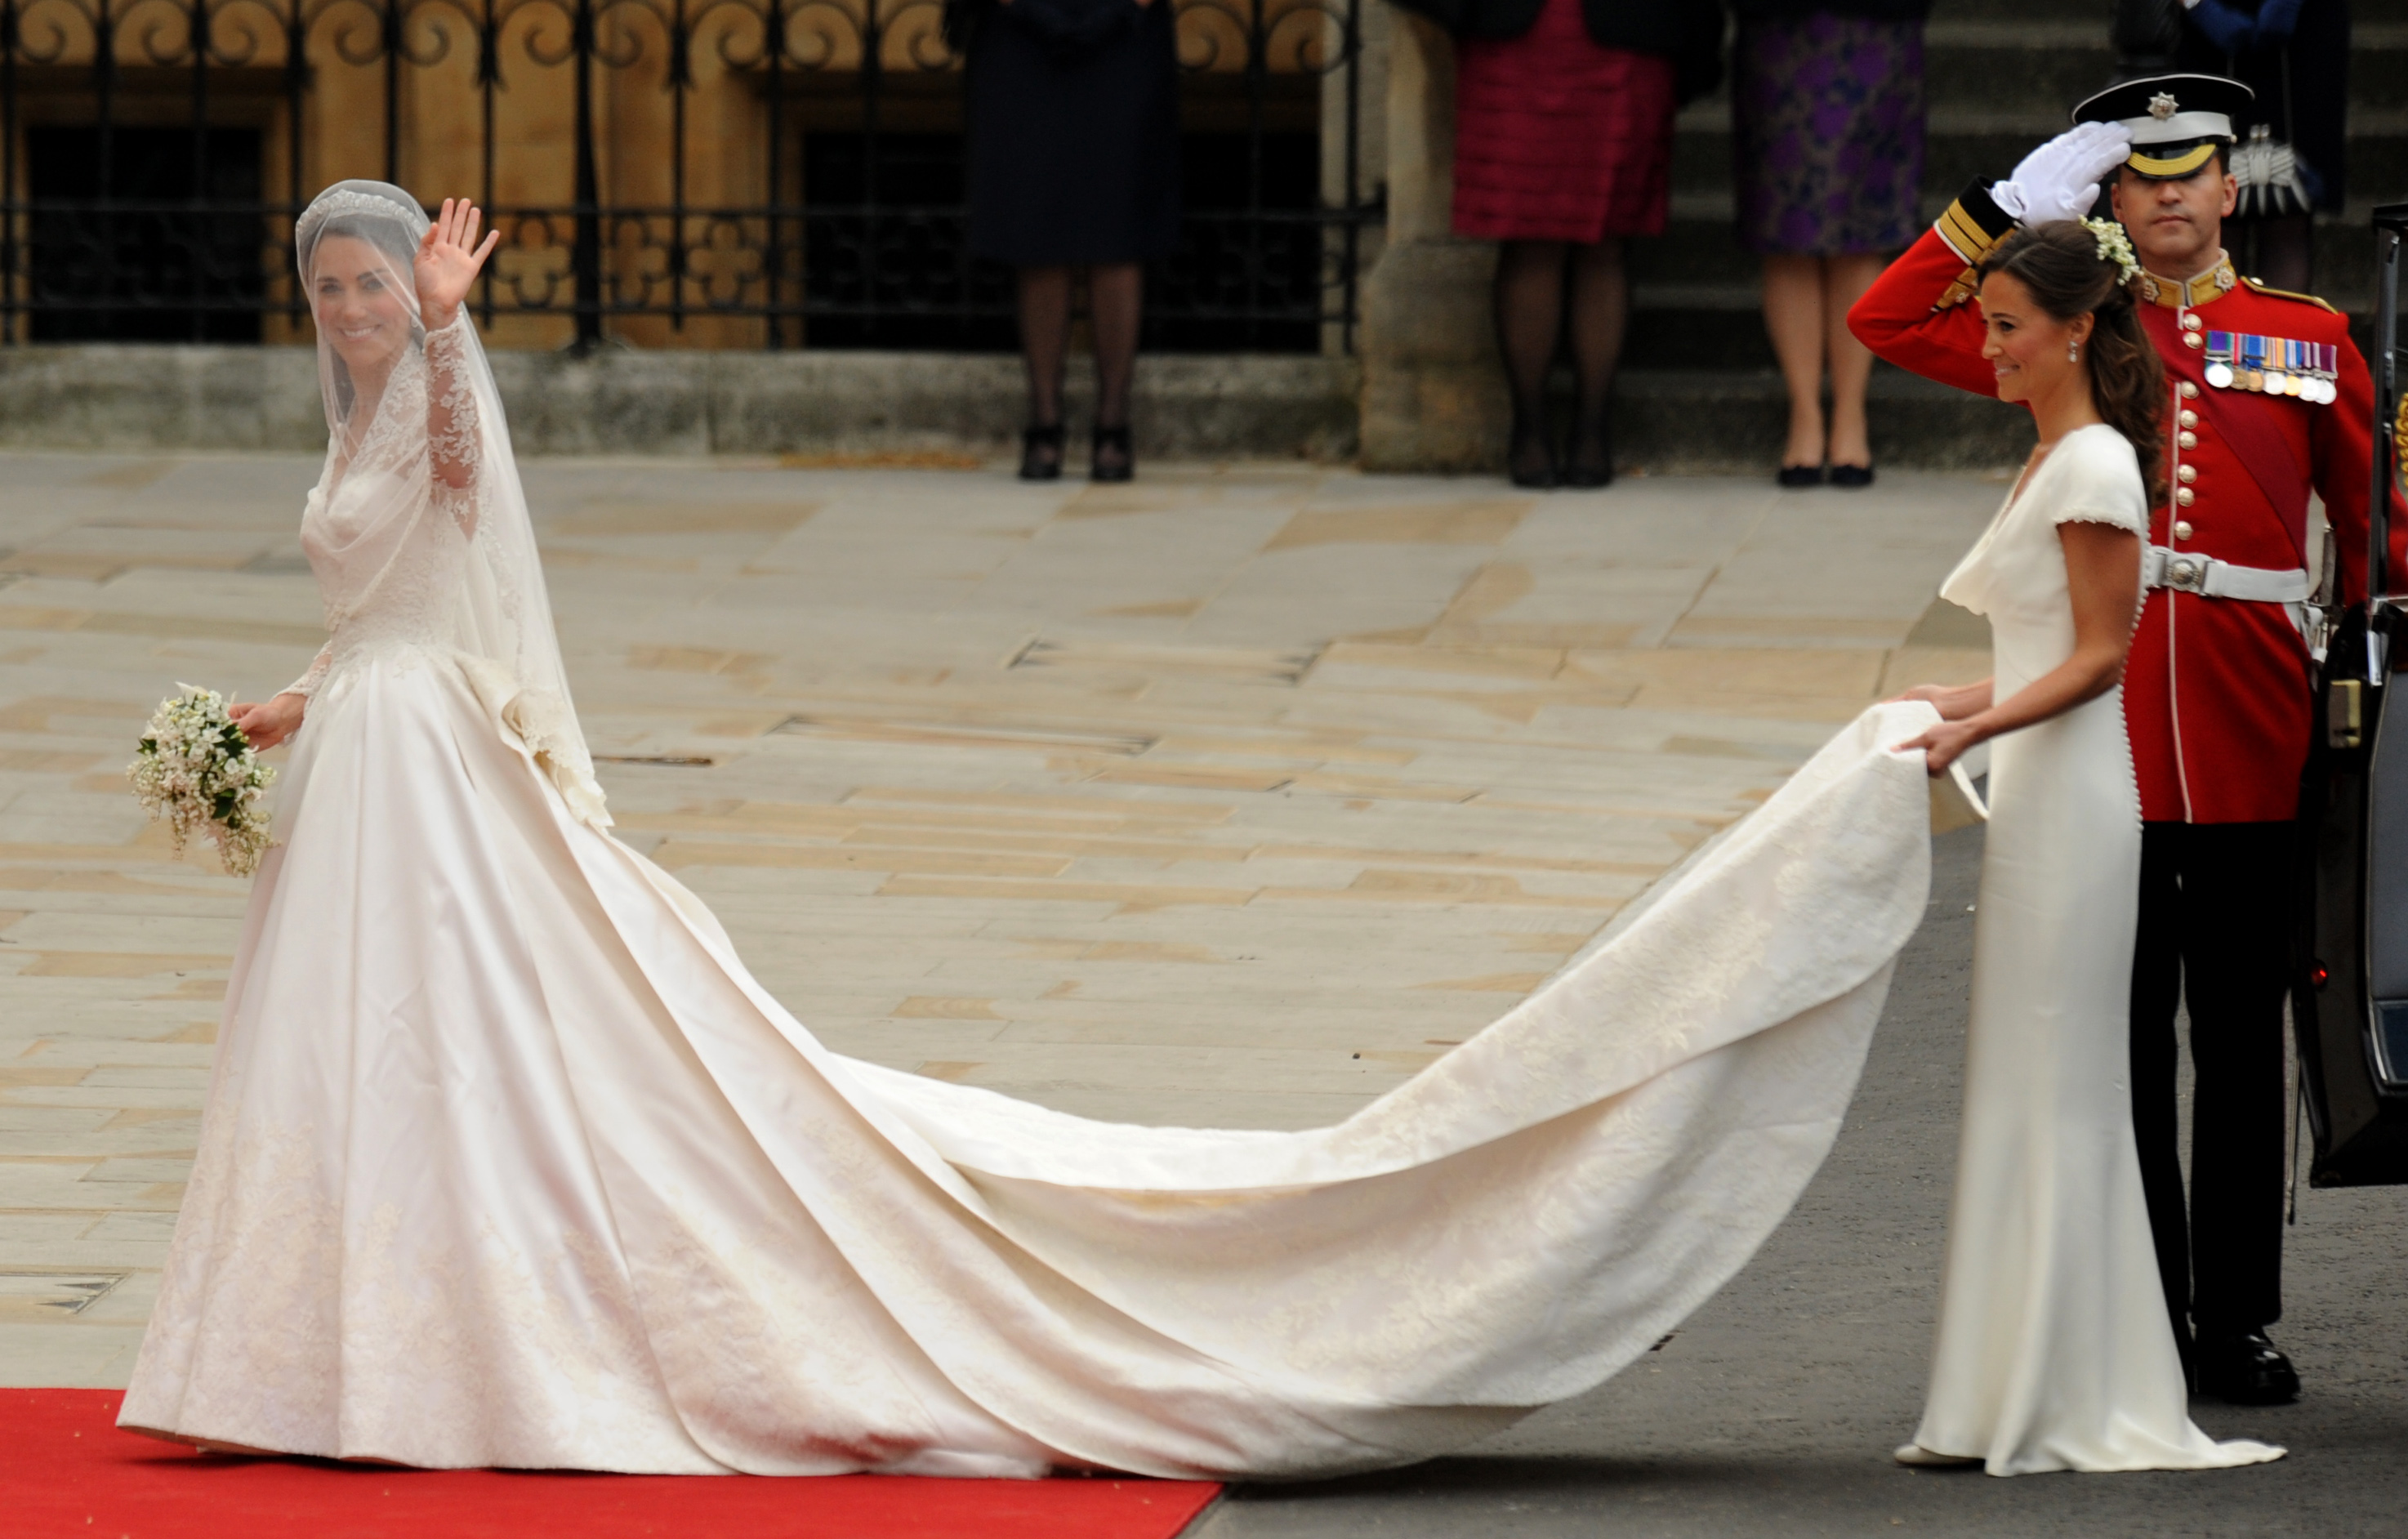 kate middletons wedding dress essay The wedding dress was designed by sarah brunton catherine middleton has followed her own taste, a v-neck décolleté and a silhouette that stayed close to.